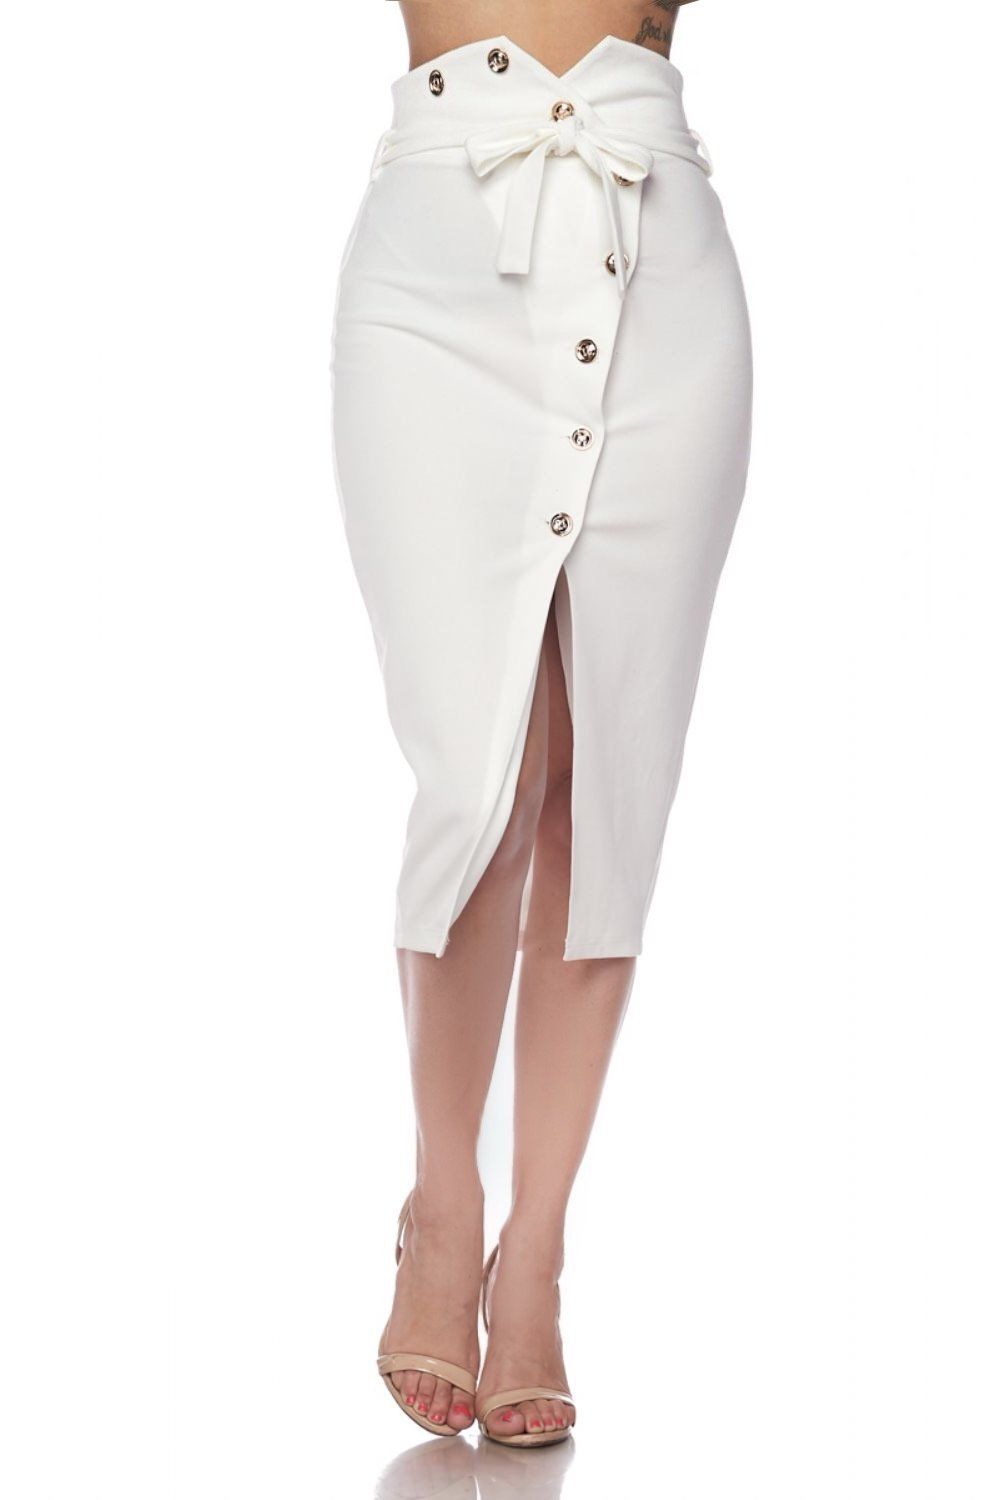 Qara High Waisted Button Skirt - Skirts - Marsia